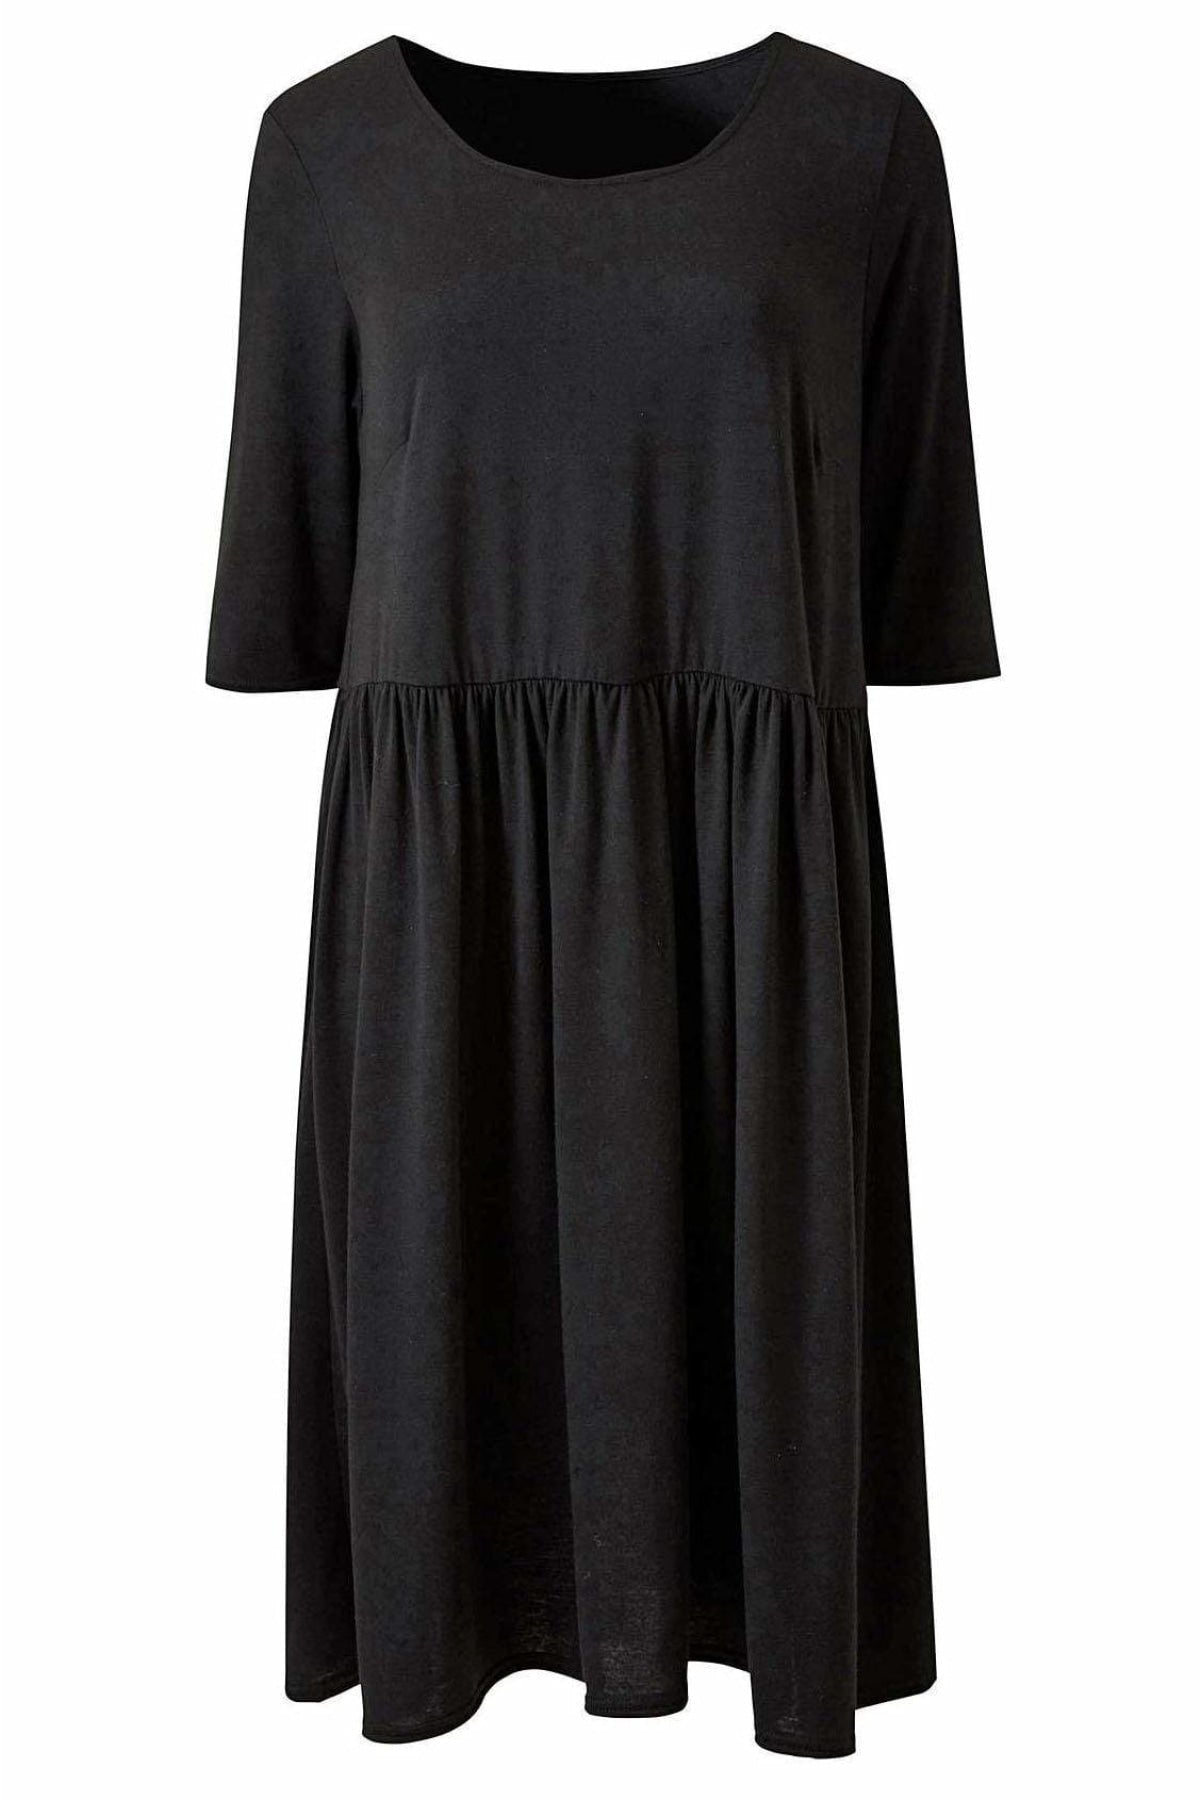 Simply Be Simply Be Black Jersey Smock Dress | Secret Label